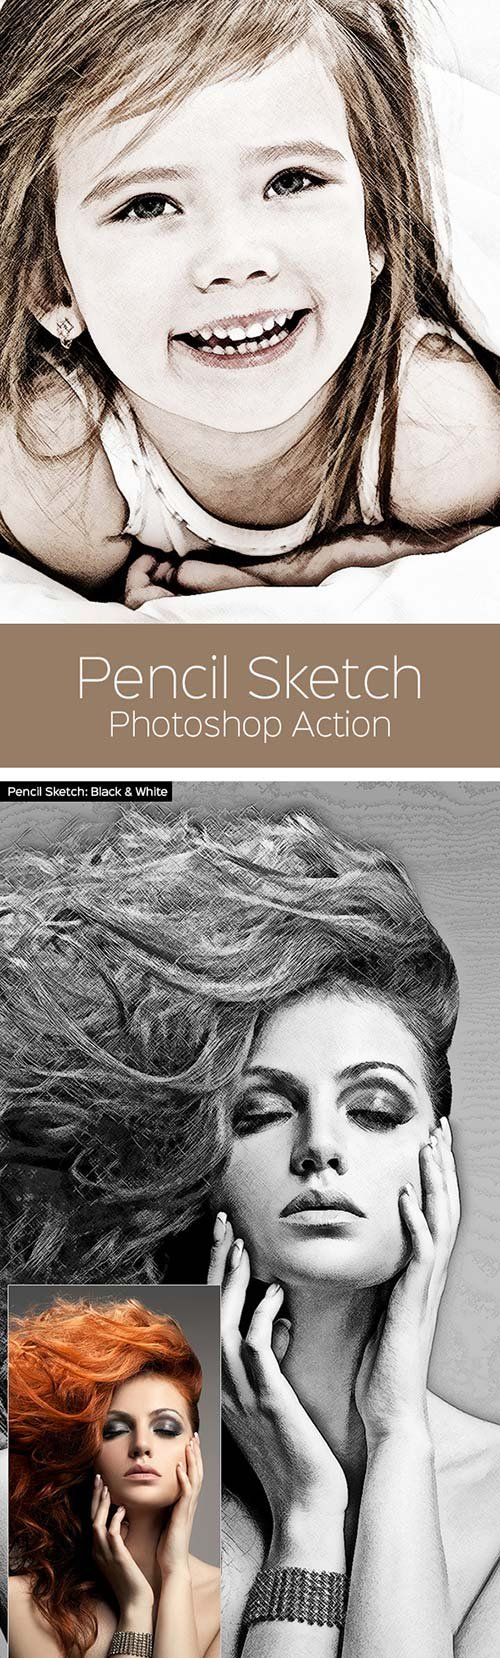 Graphicriver pencil sketch photoshop action